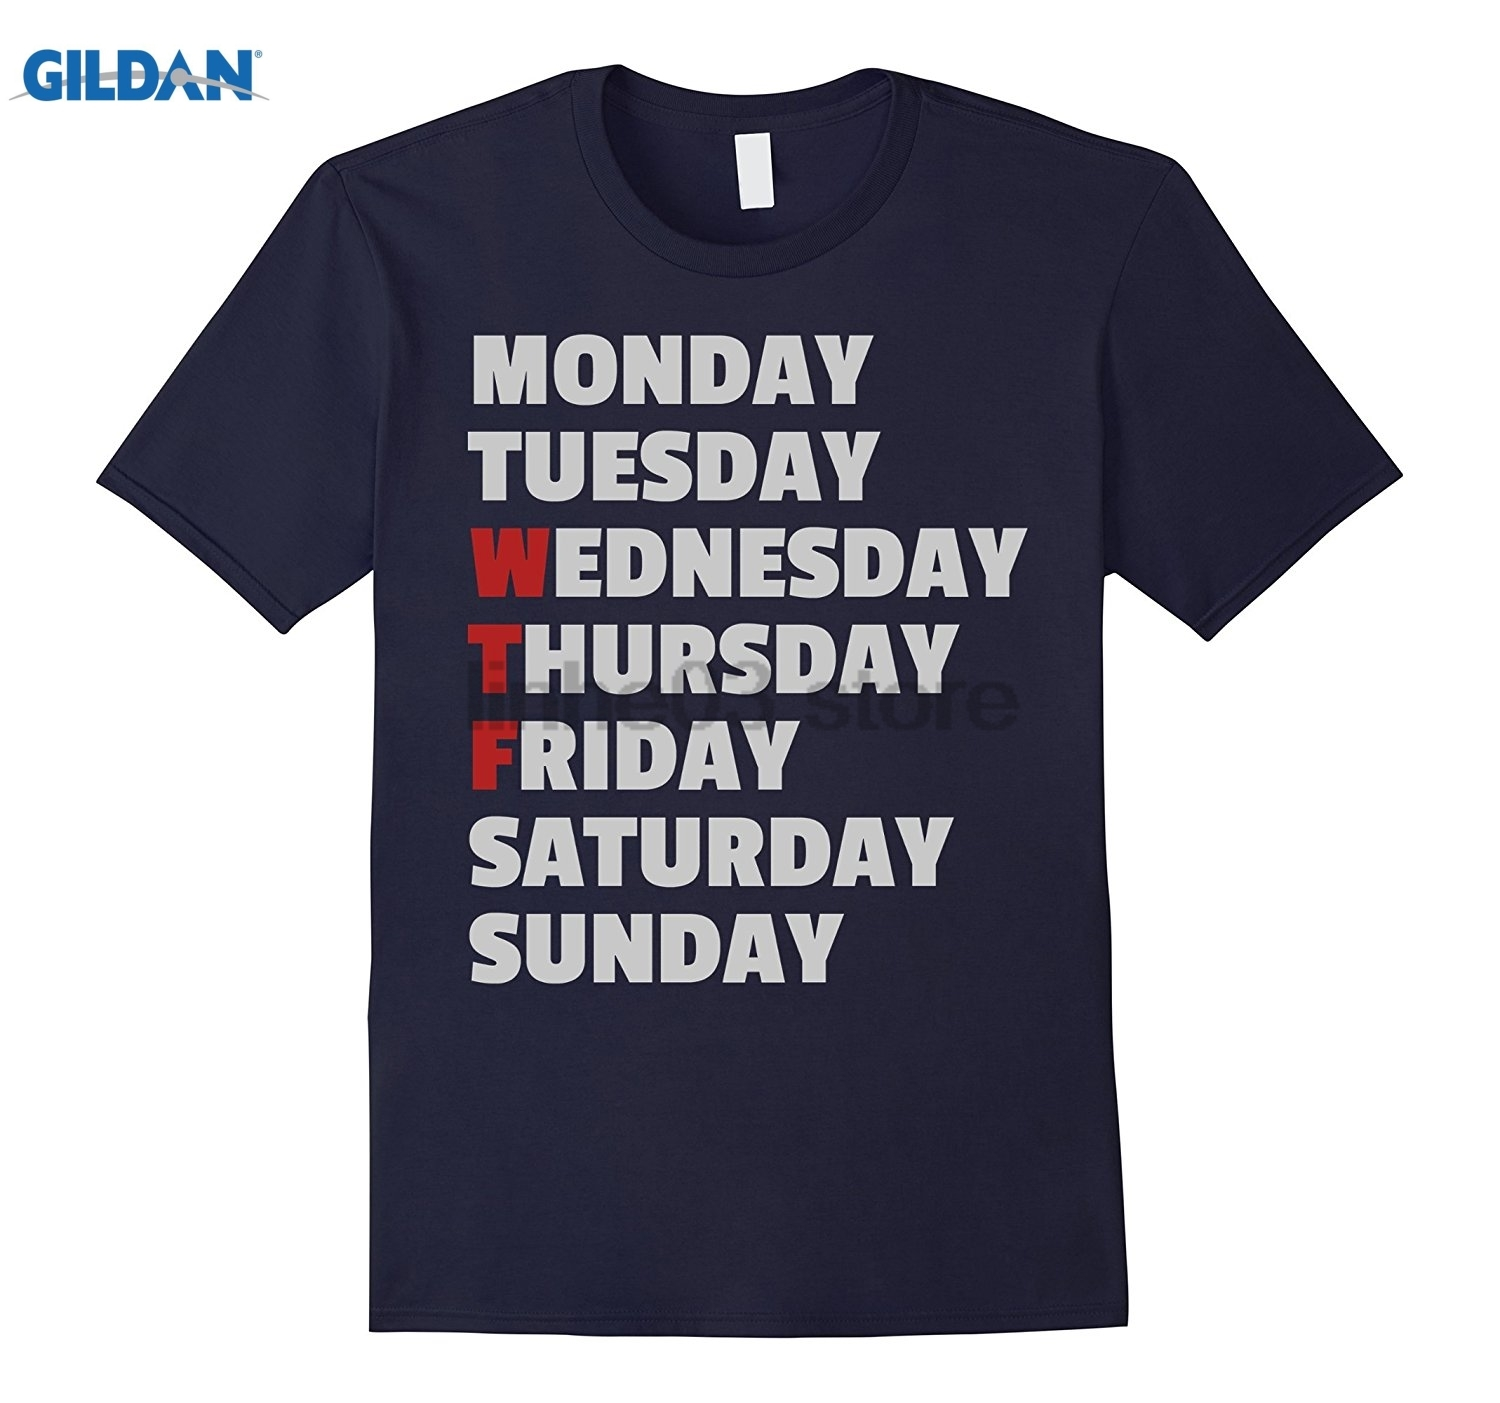 GILDAN MTWTFSS - Funny WTF Days of the Week T-Shirt - Grey and Red Mothers Day Ms. T-shirt glasses Womens T-shirt